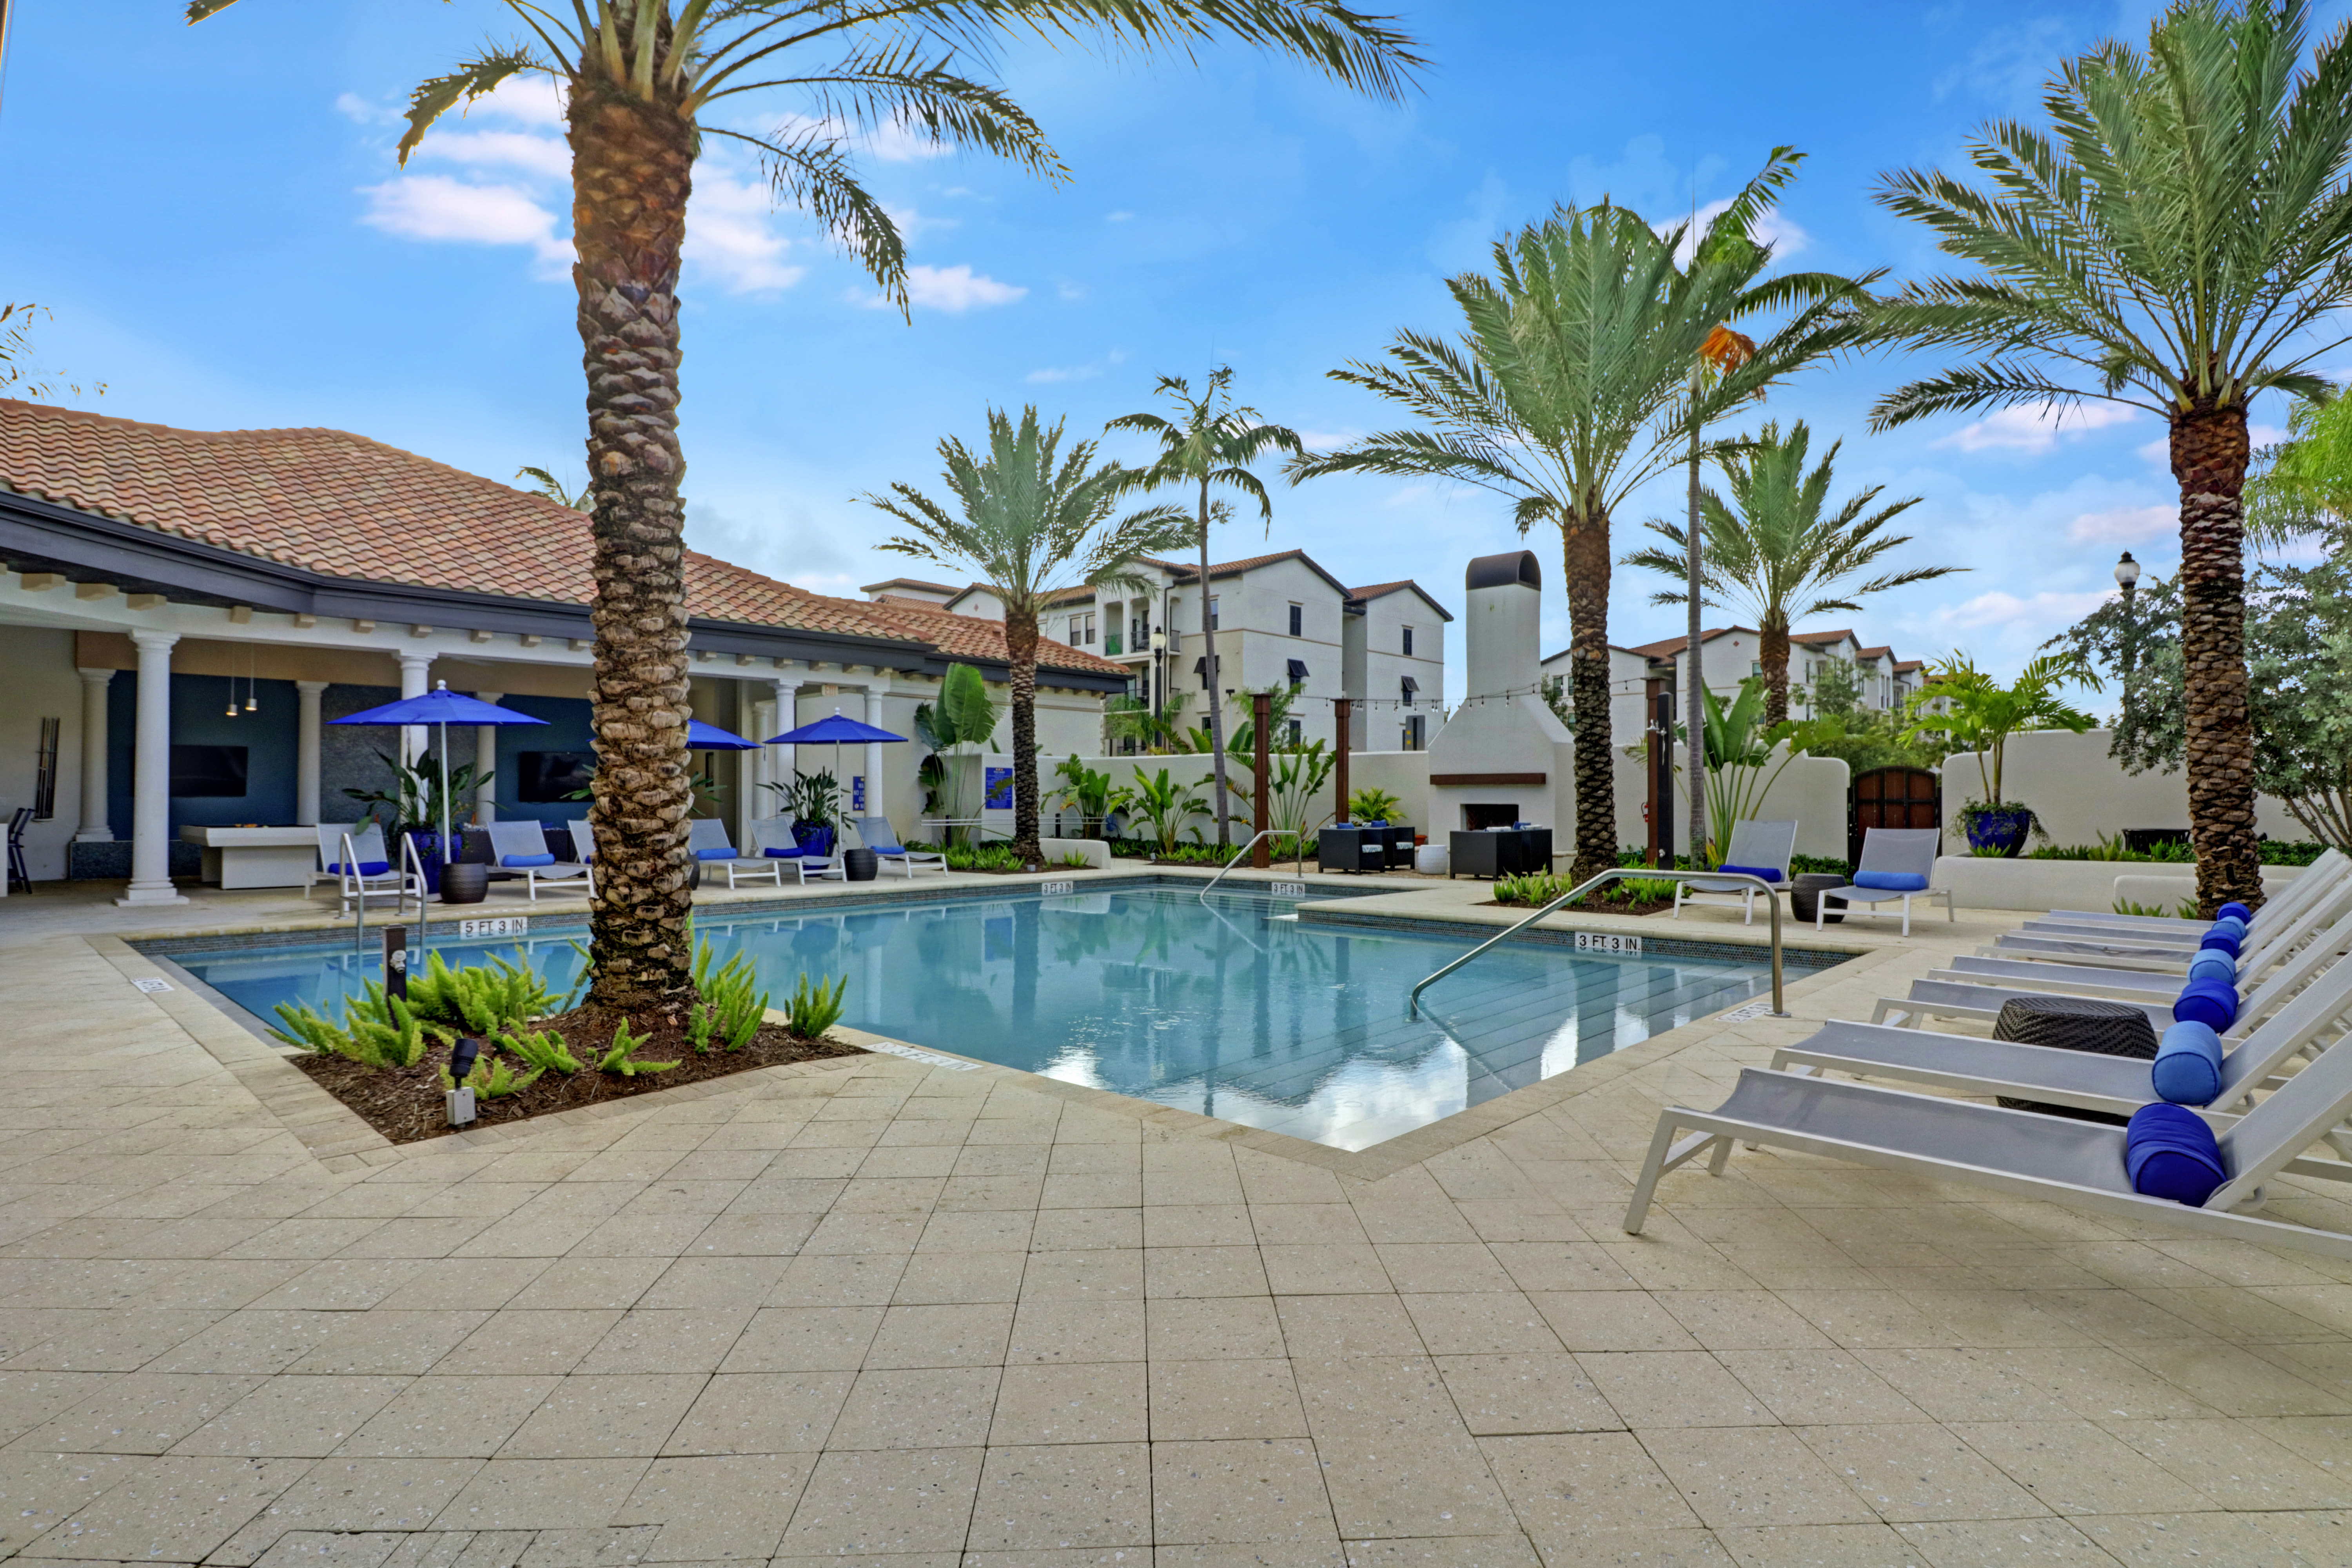 Luxurious community swimming pool at Linden Pointe in Pompano Beach, Florida